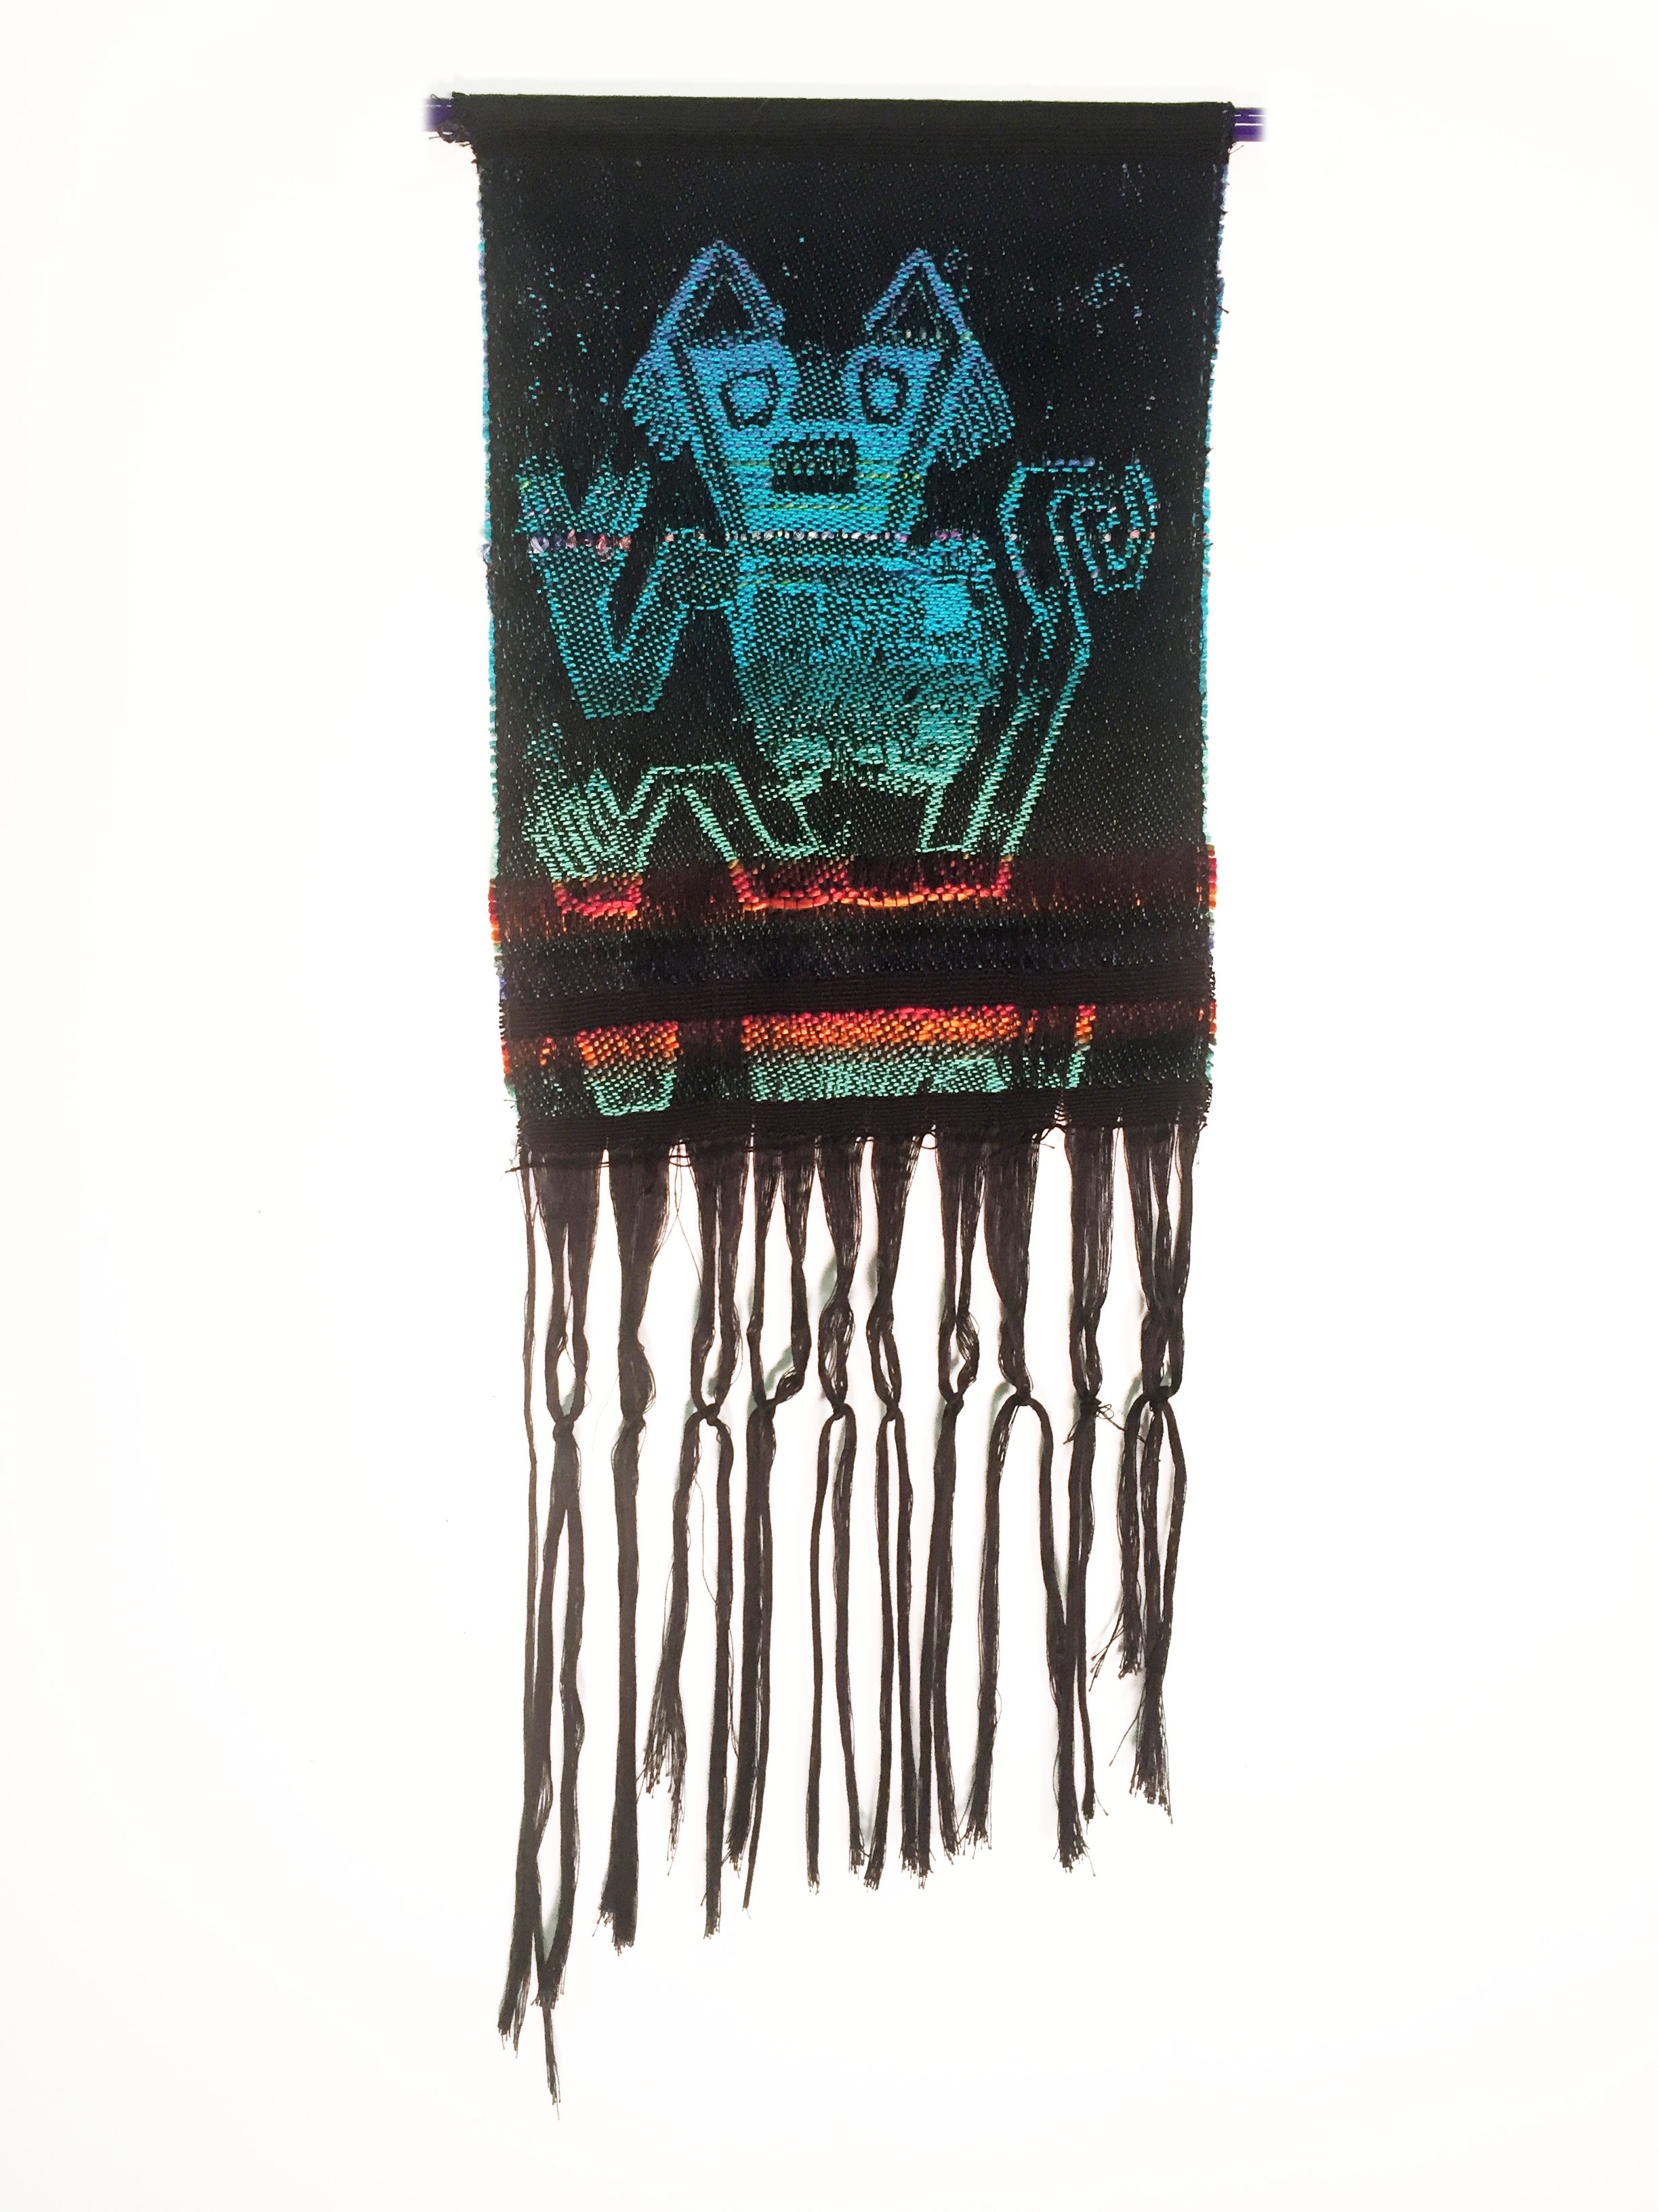 "Robin Kang, Vulcan Salute, Hand Jacquard woven cotton, hand dyed wool, and synthetic fibers 10.5 x 23"", 2016"